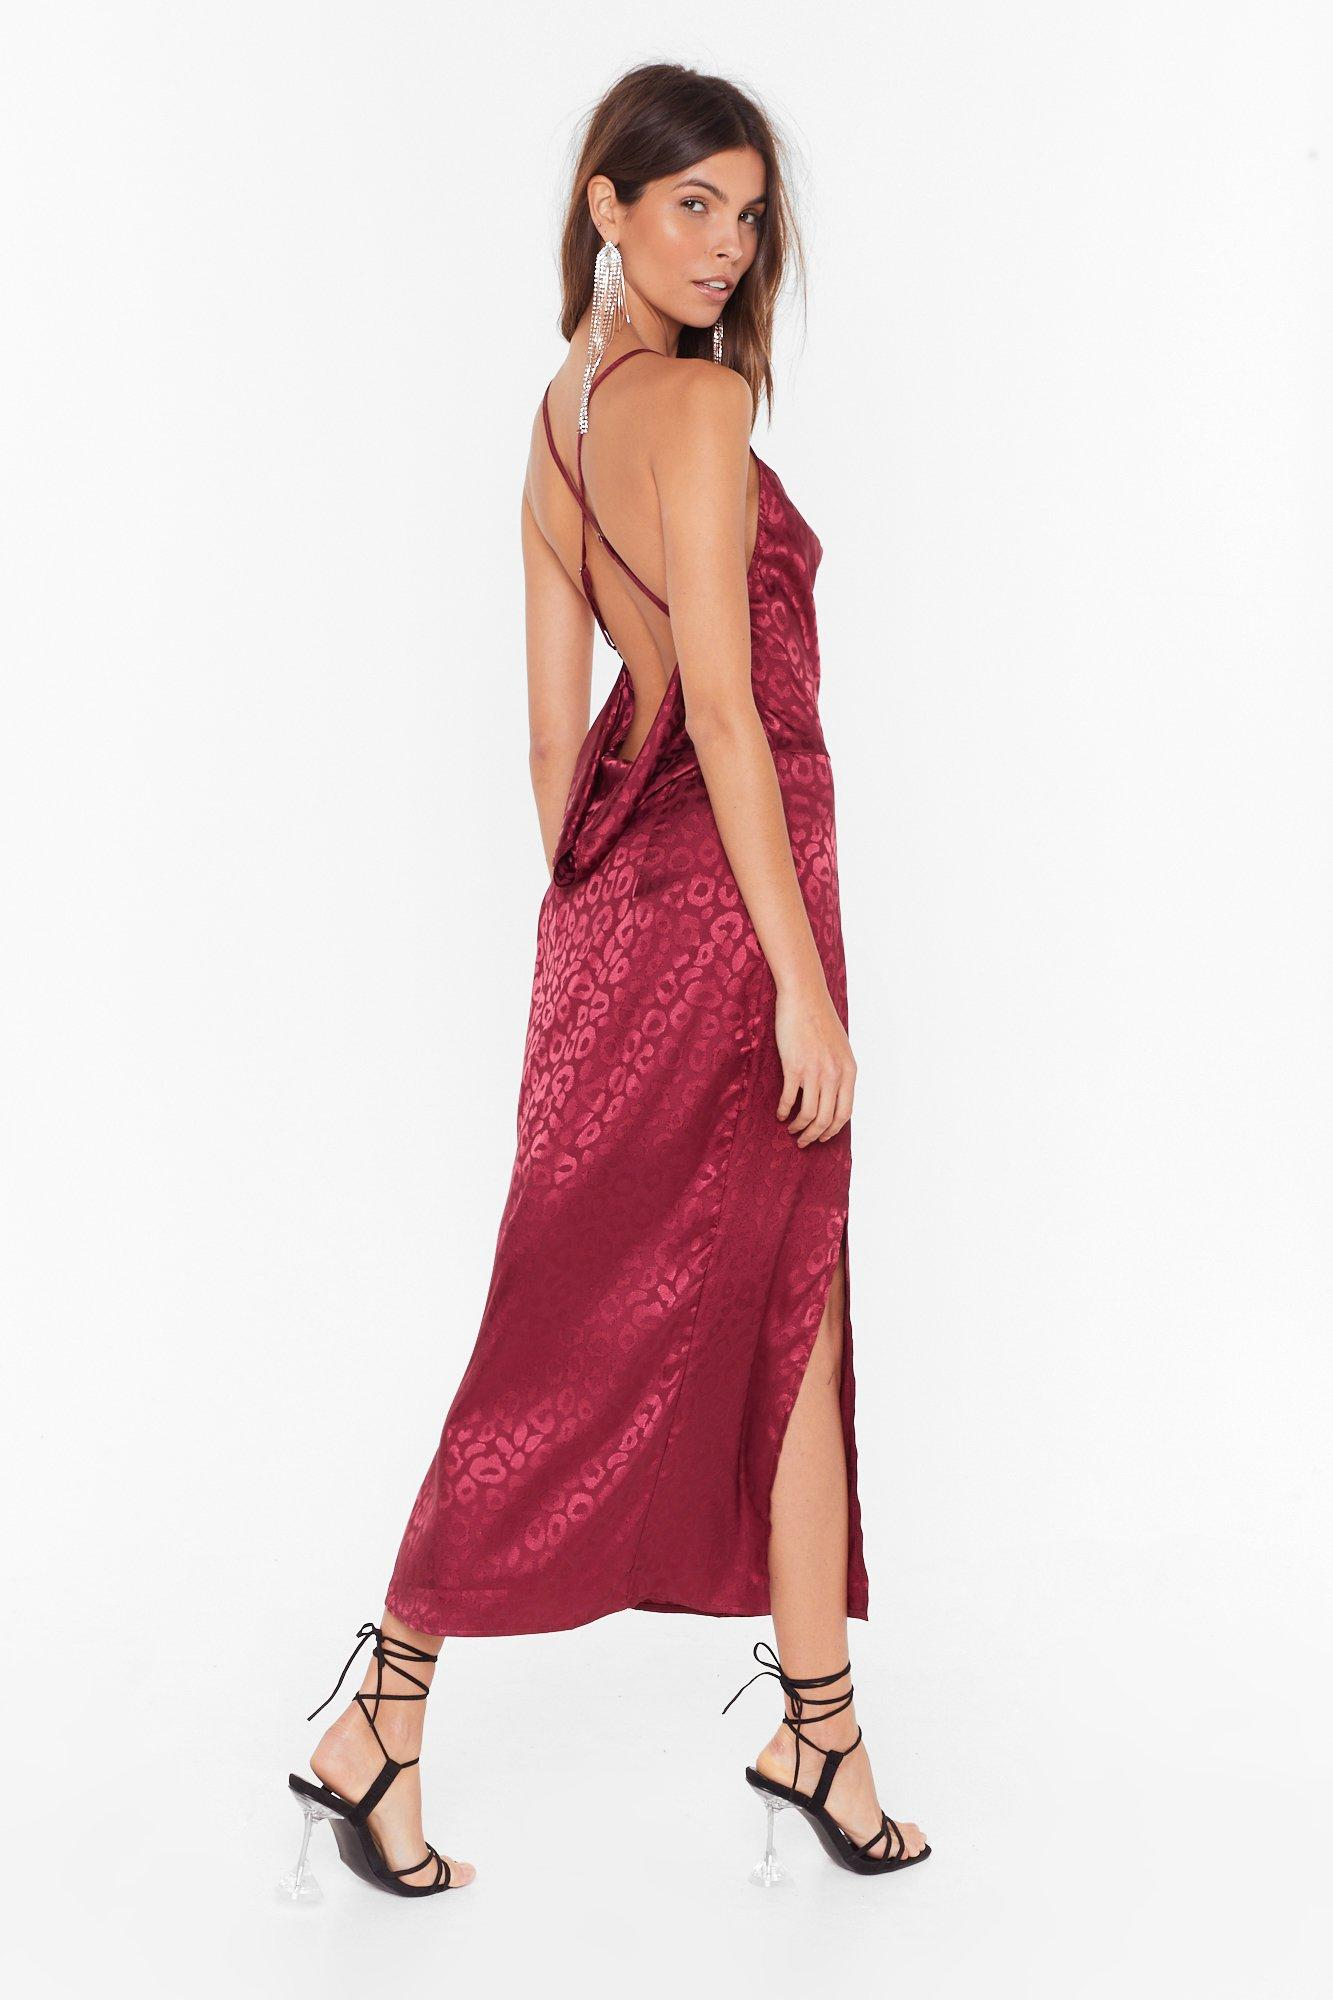 Prey Tell Cowl Midi Dress by Nasty Gal